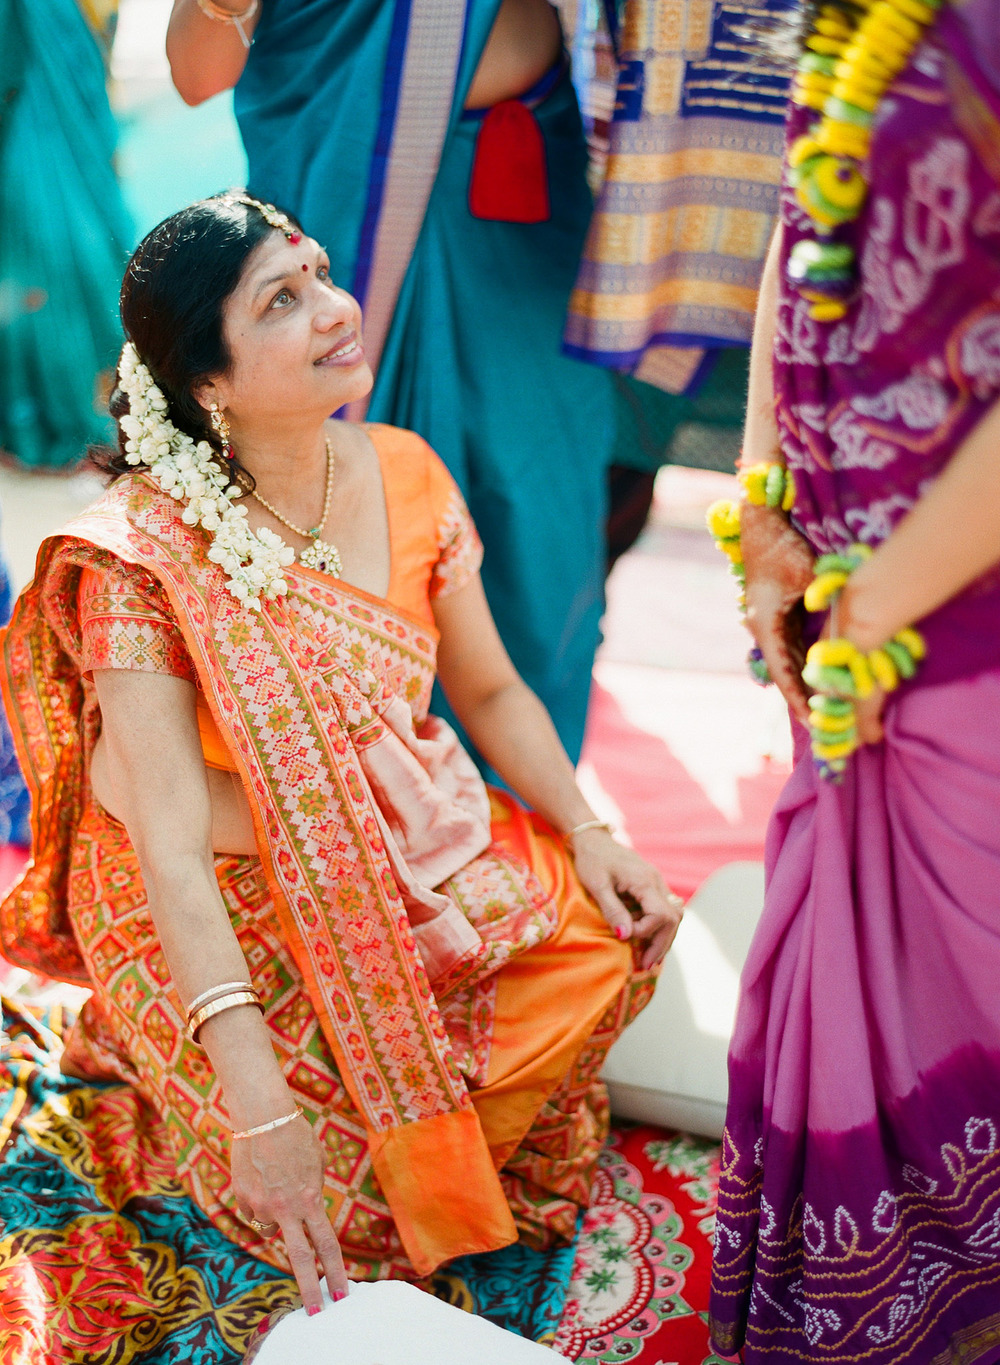 aunties help indian bride during her hindu pithi ceremony in palm coast florida while destination wedding photographer Lexia Frank - rated best indian wedding photographer - photographs this luxury indian wedding on film because she is a film photographer in florida for luxury weddings